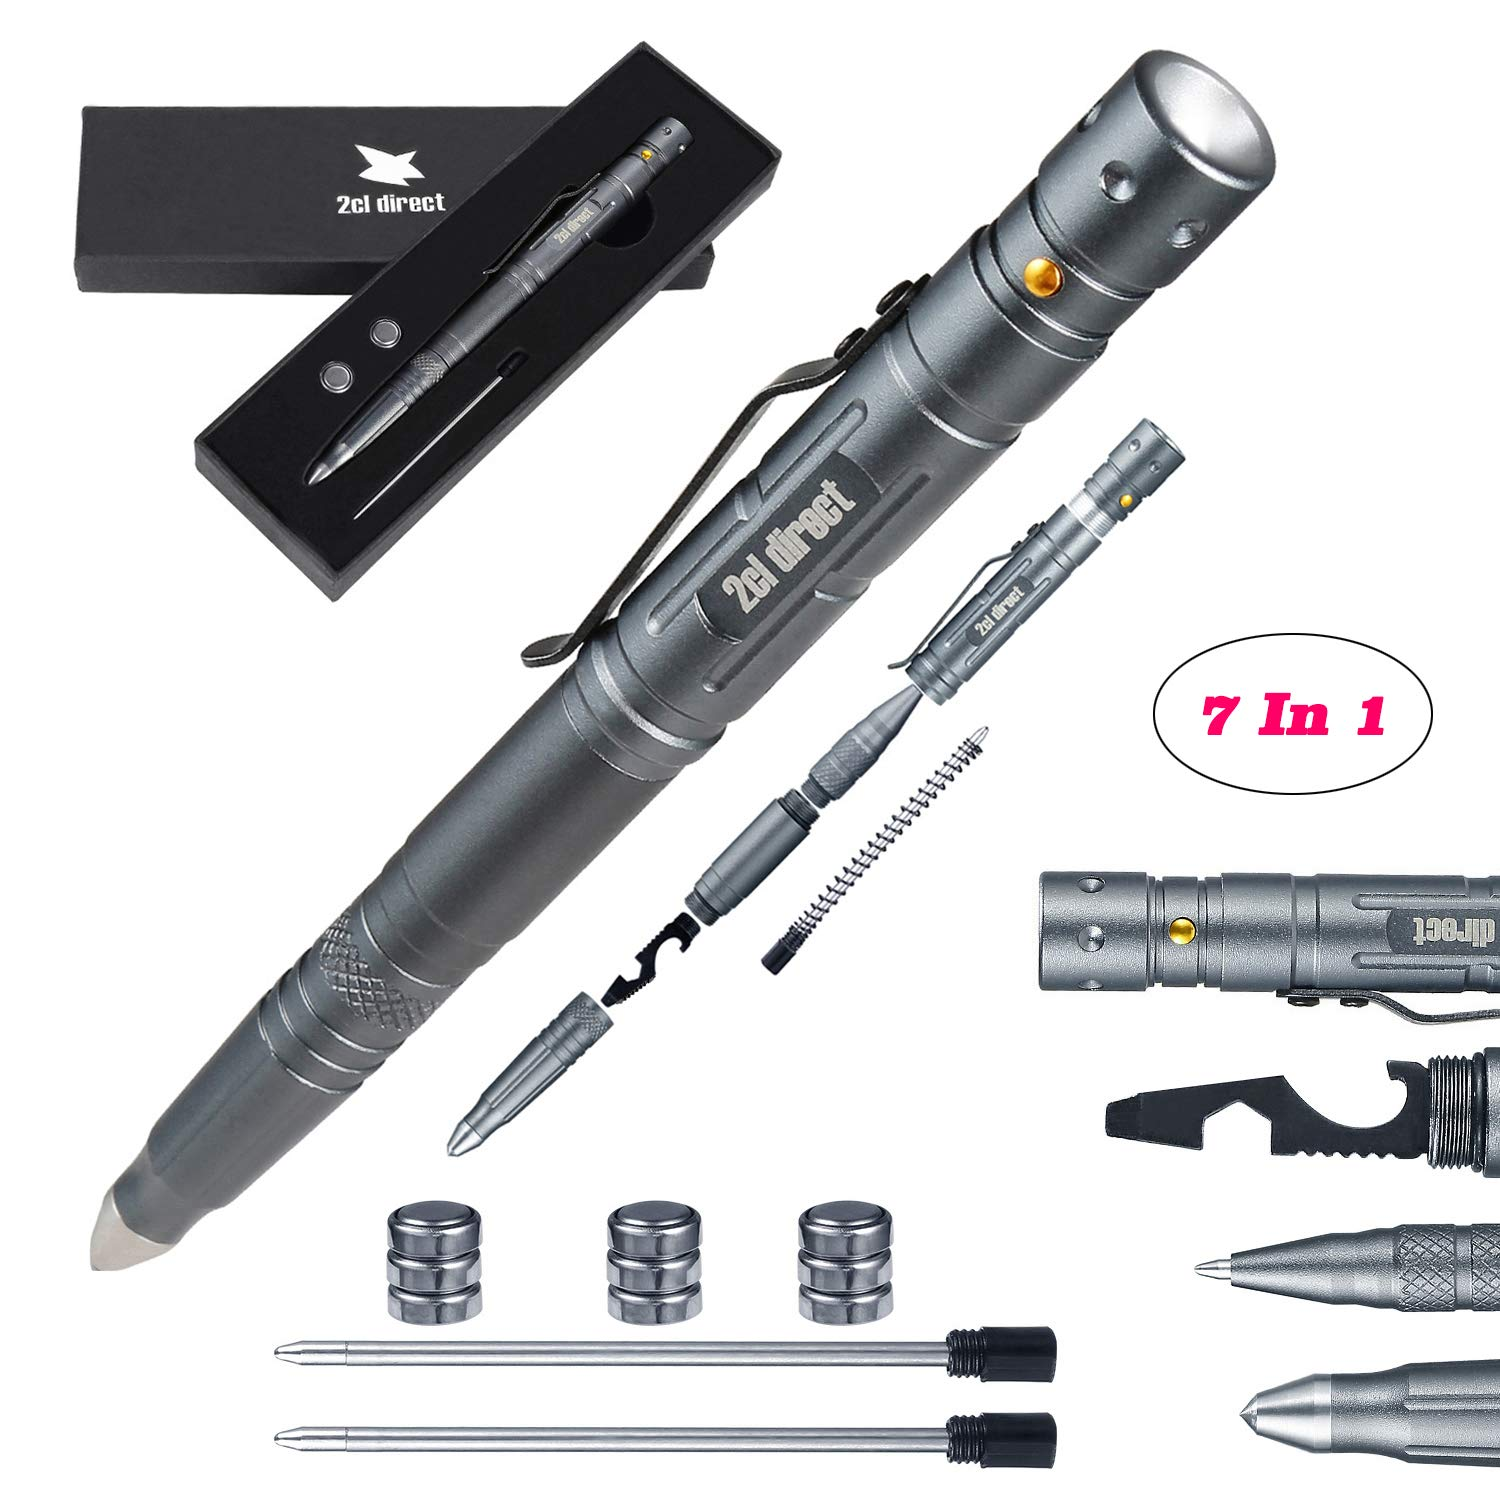 Tactical Pens(7-in-1) For Mens Dad Gifts Emergency Tool Survival Kit Military Pen with LED Tactical Flashlight Everyday Carry (EDC) Survival Gear